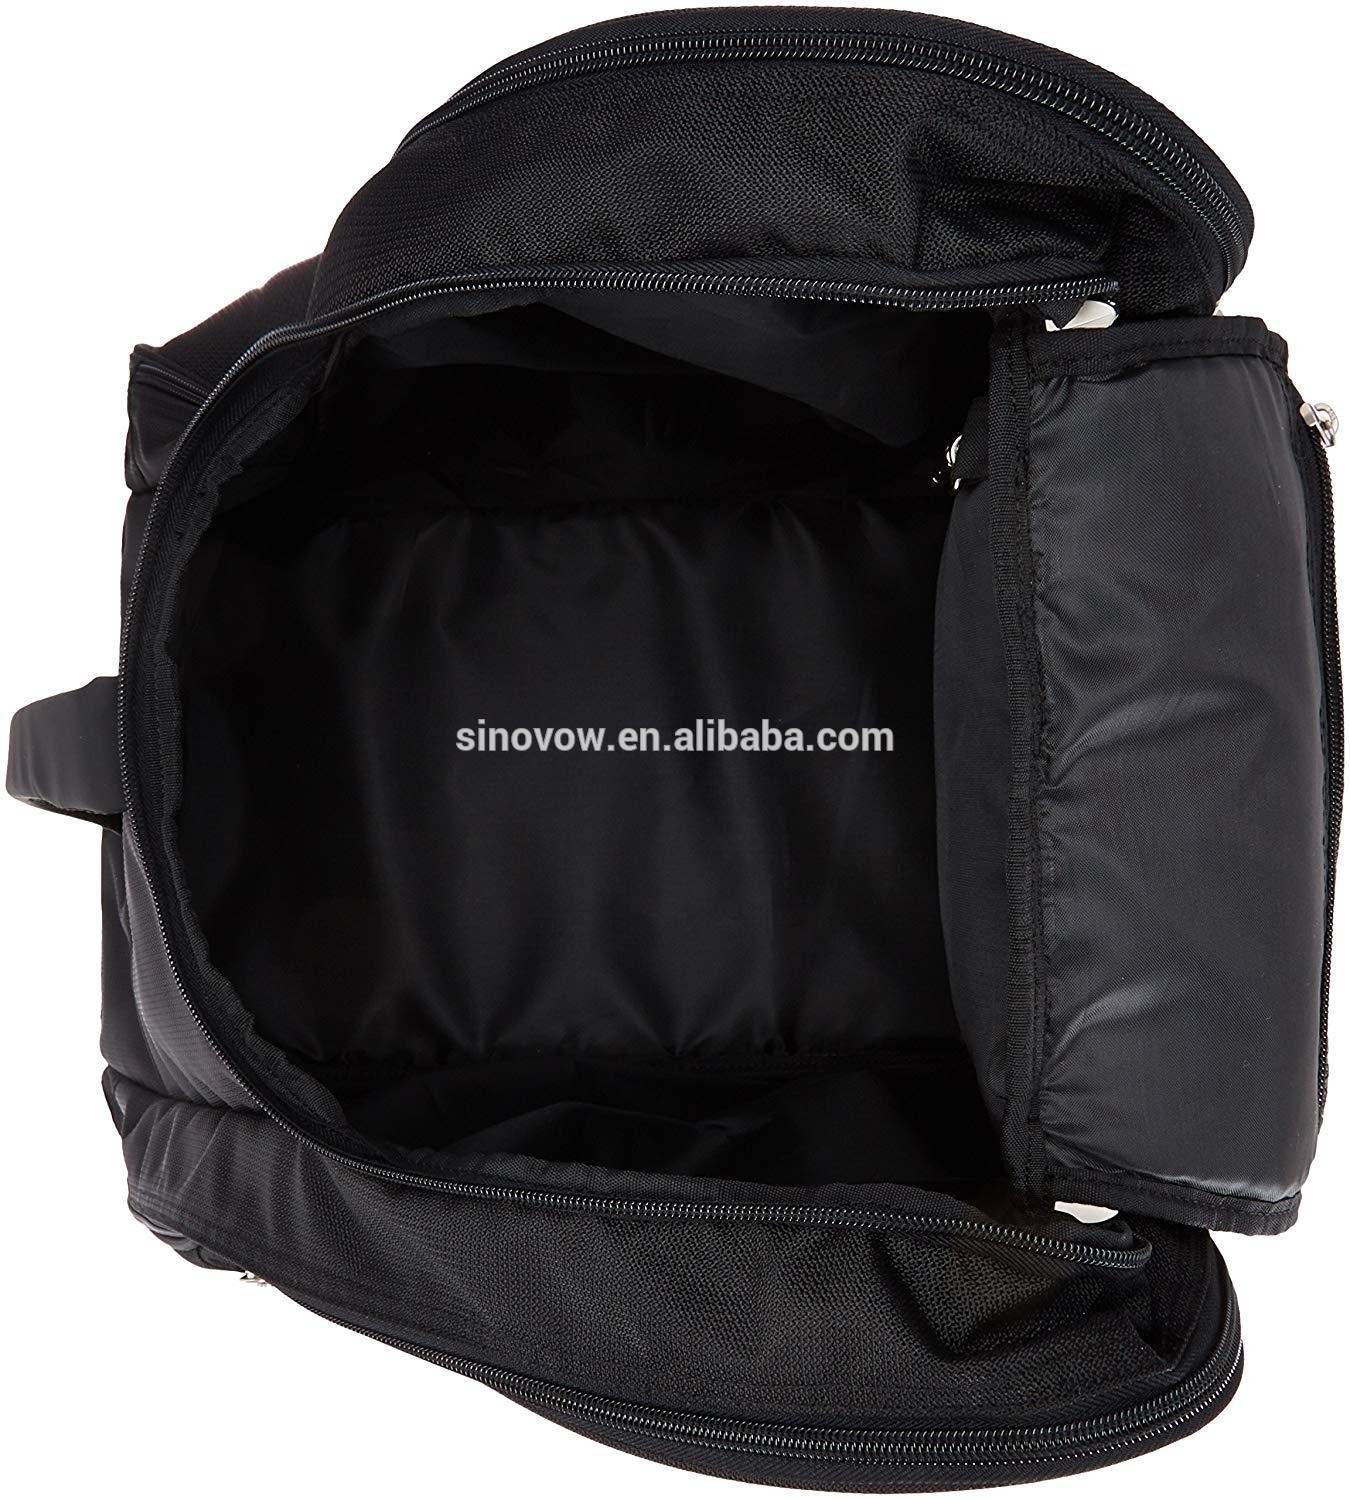 Ski Boot Bag- Ski Gear Backpack For Boots Water-Resistant Backpack With Room For Boots,Helmet